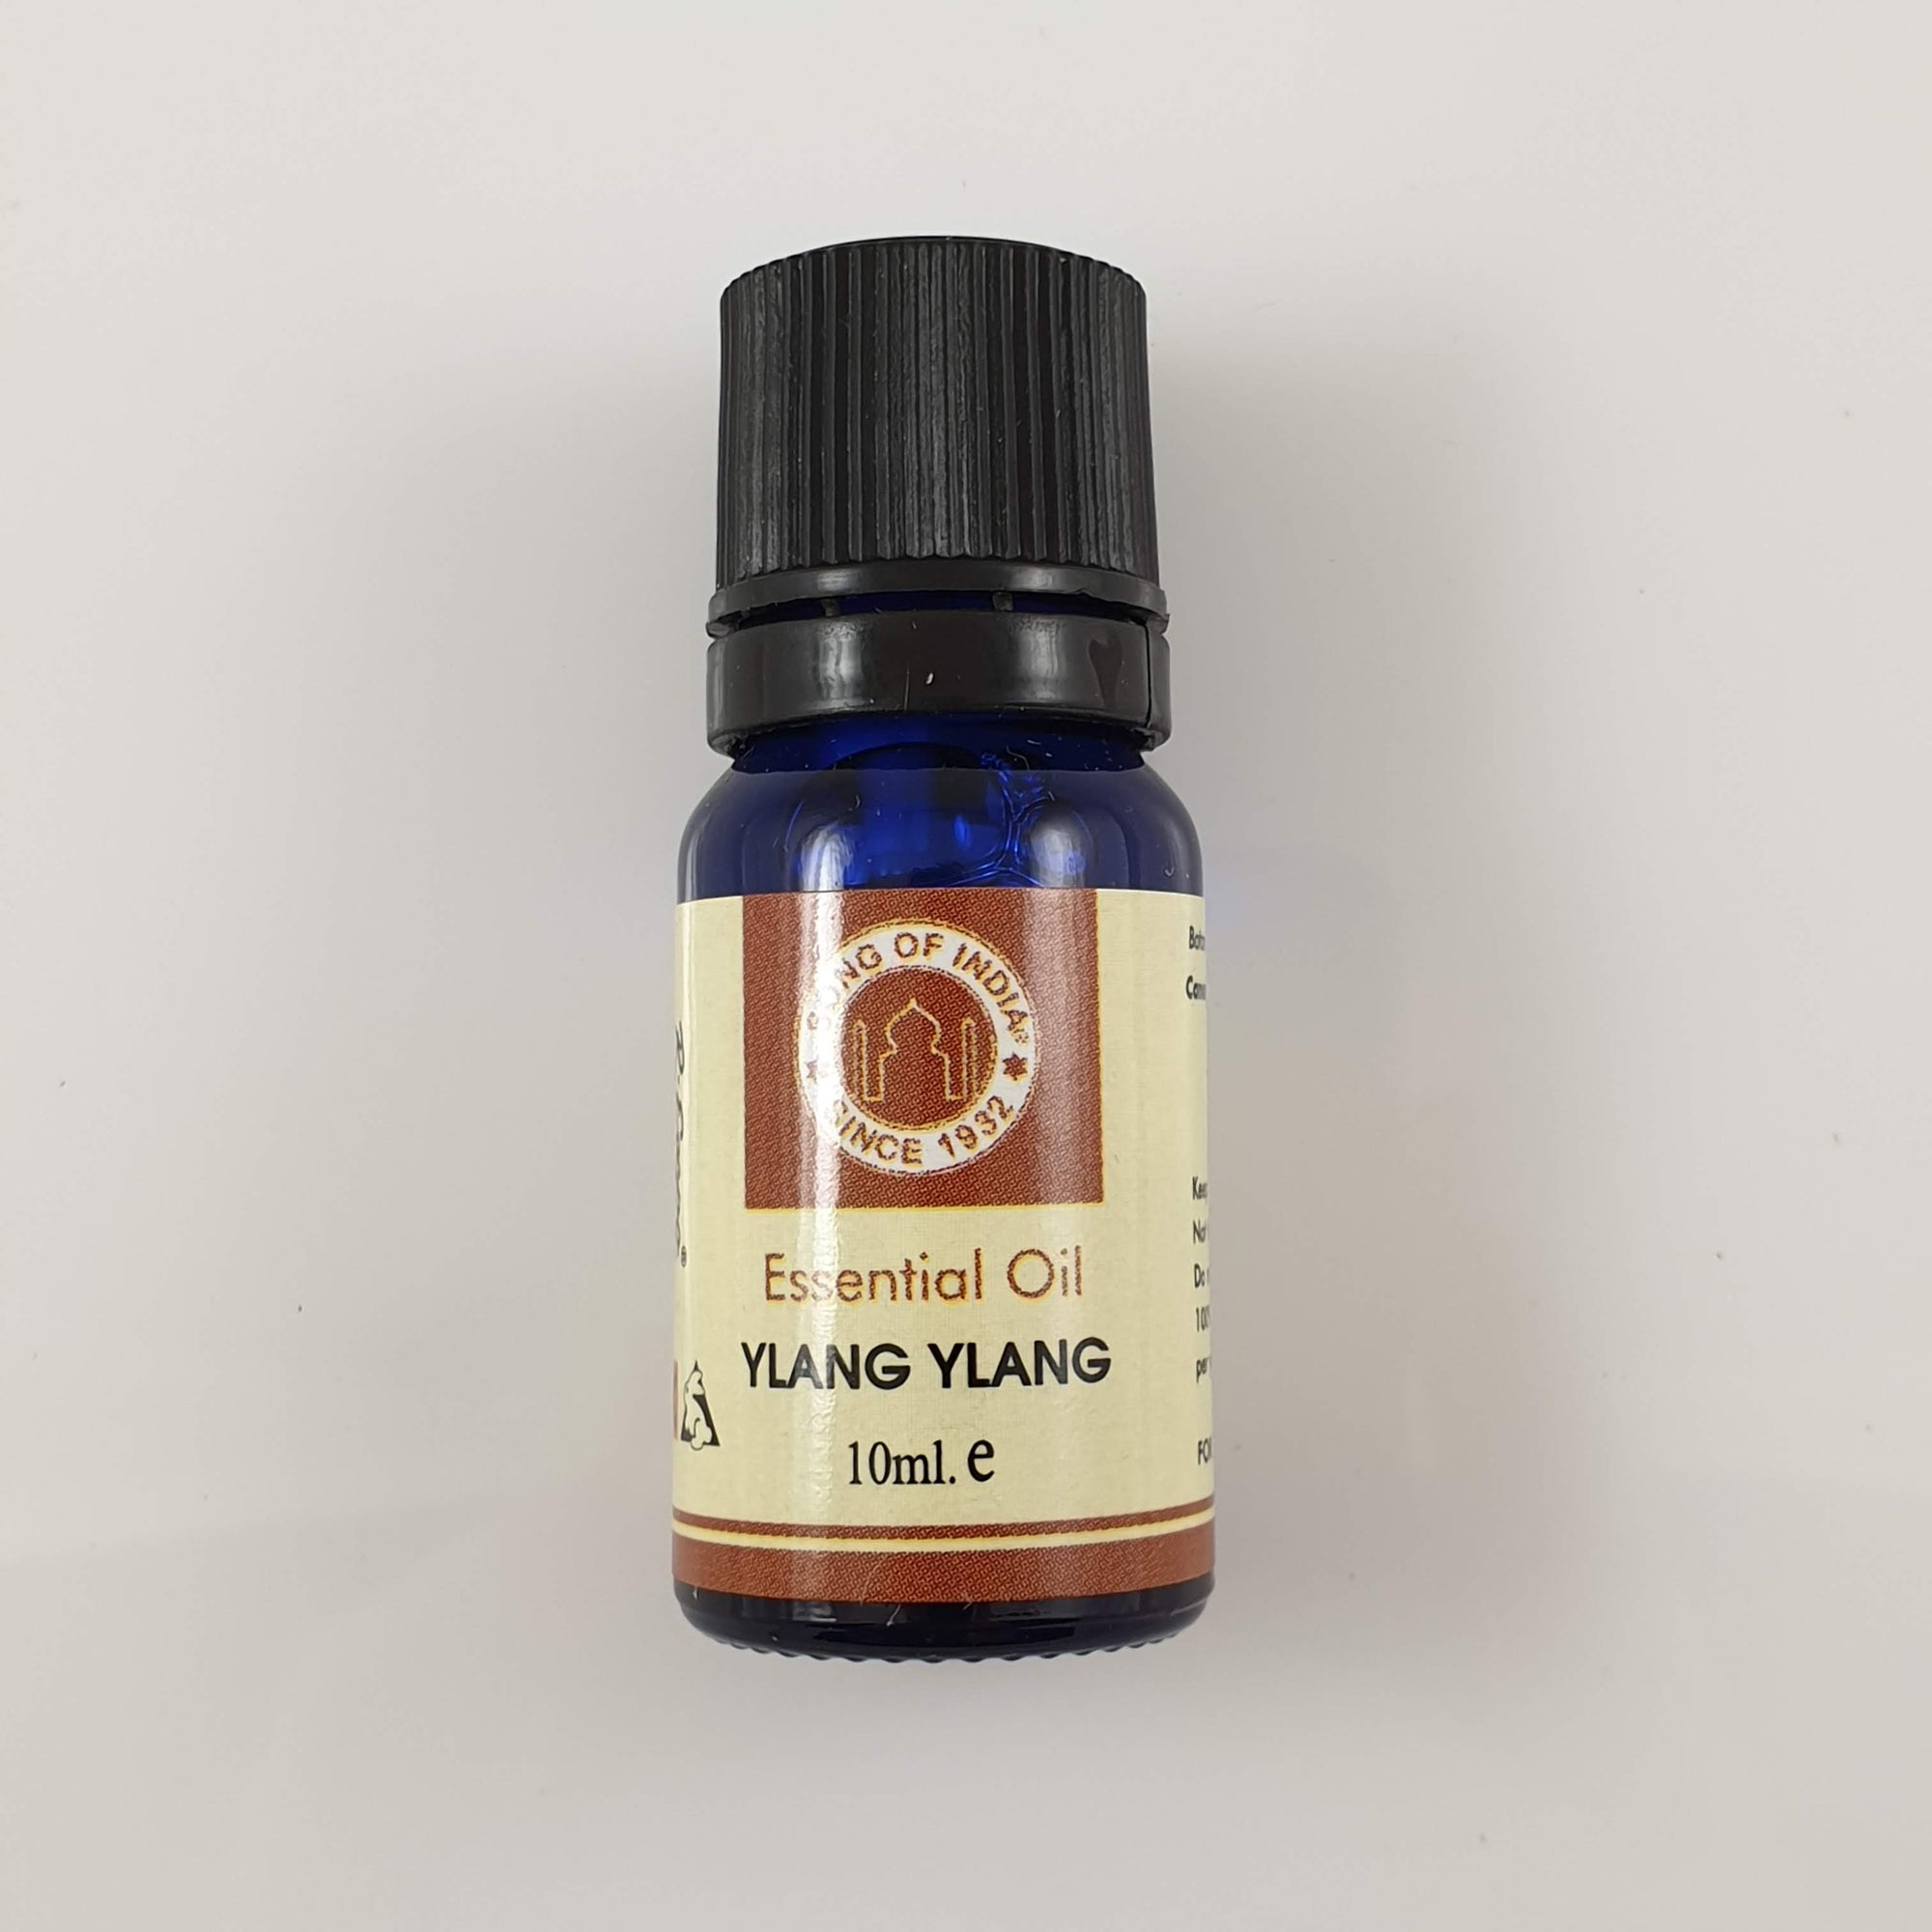 Song of India Essential Oil - Ylang Ylang 10ml - Rivendell Shop NZ